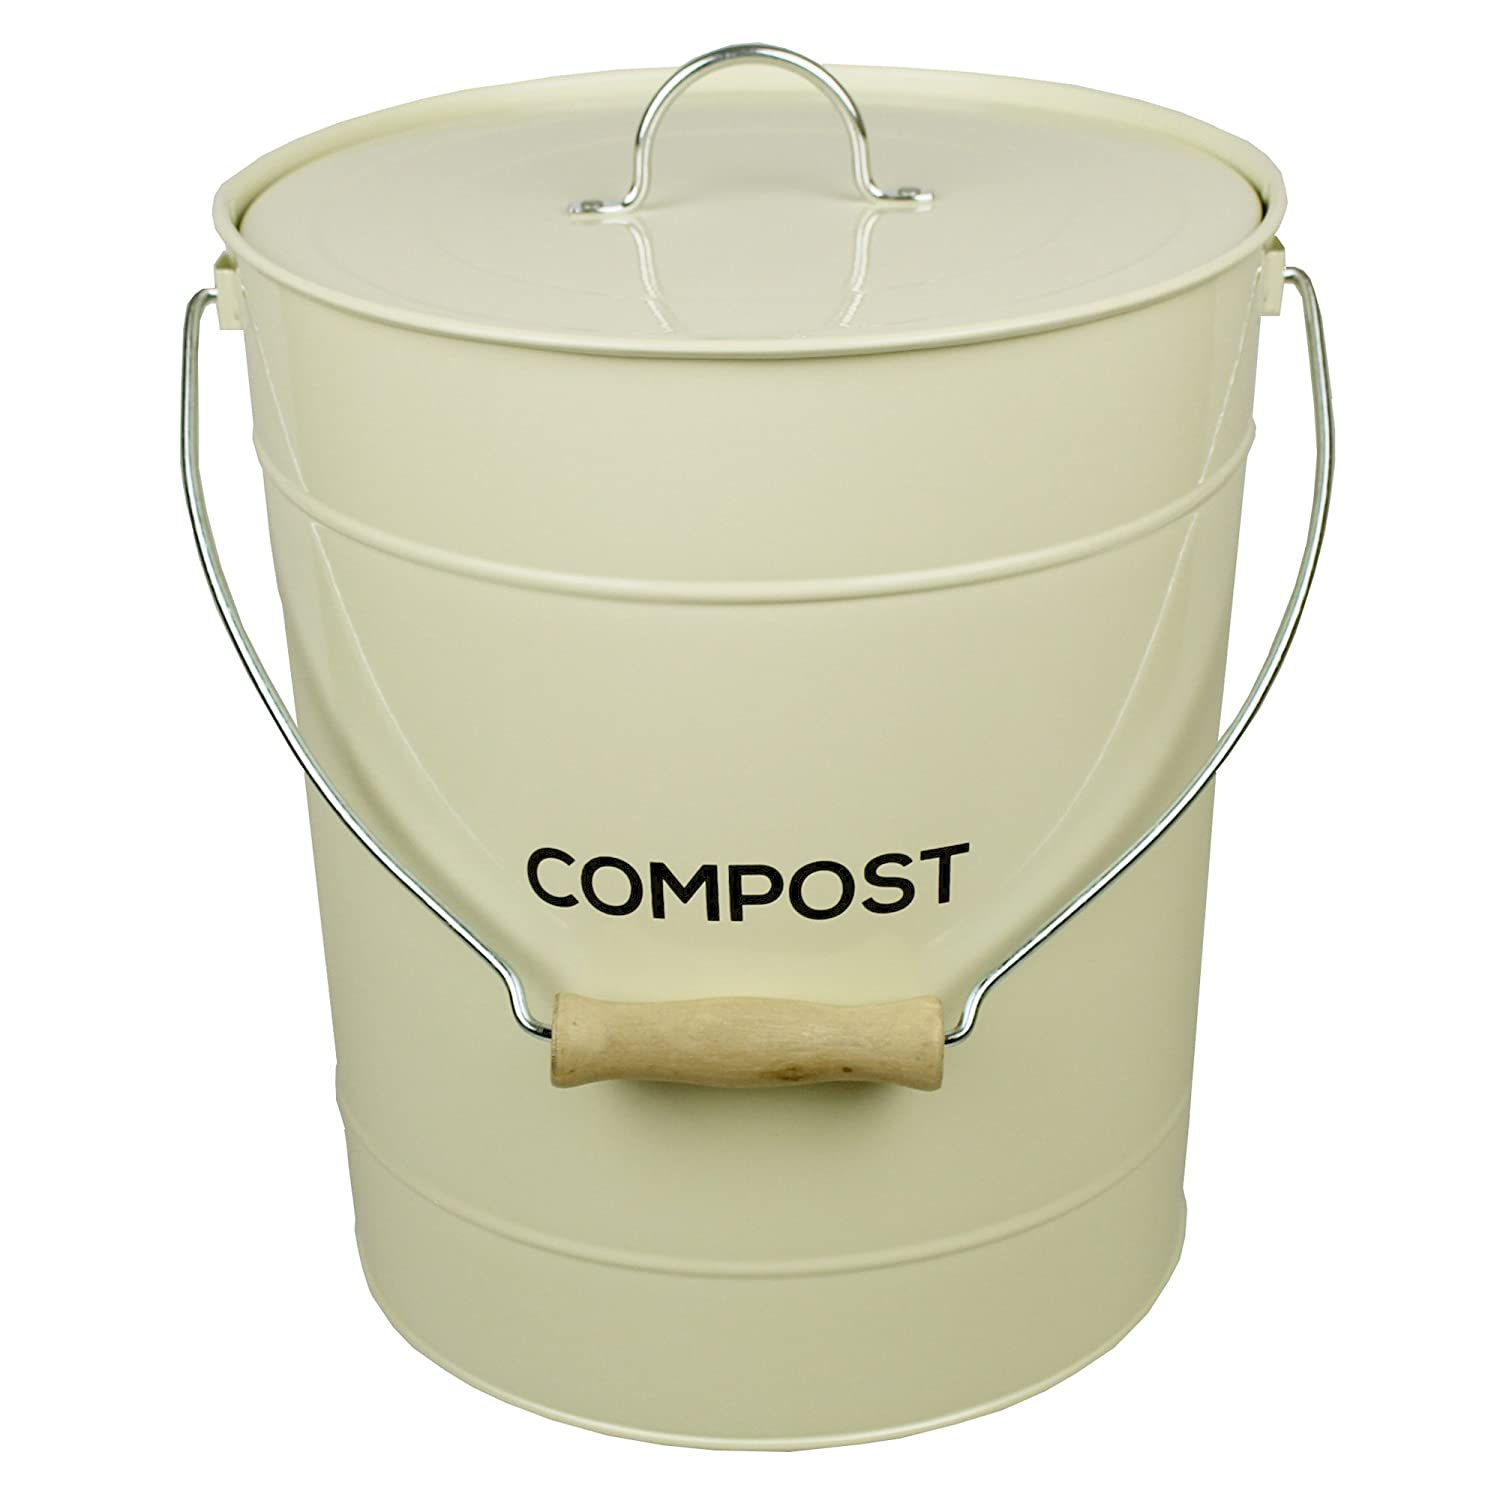 Exceptional Amazon.com: Extra Large Cream Metal Kitchen Compost Caddy   Composting Bin  For Food Waste Recycling By All Green: Home U0026 Kitchen